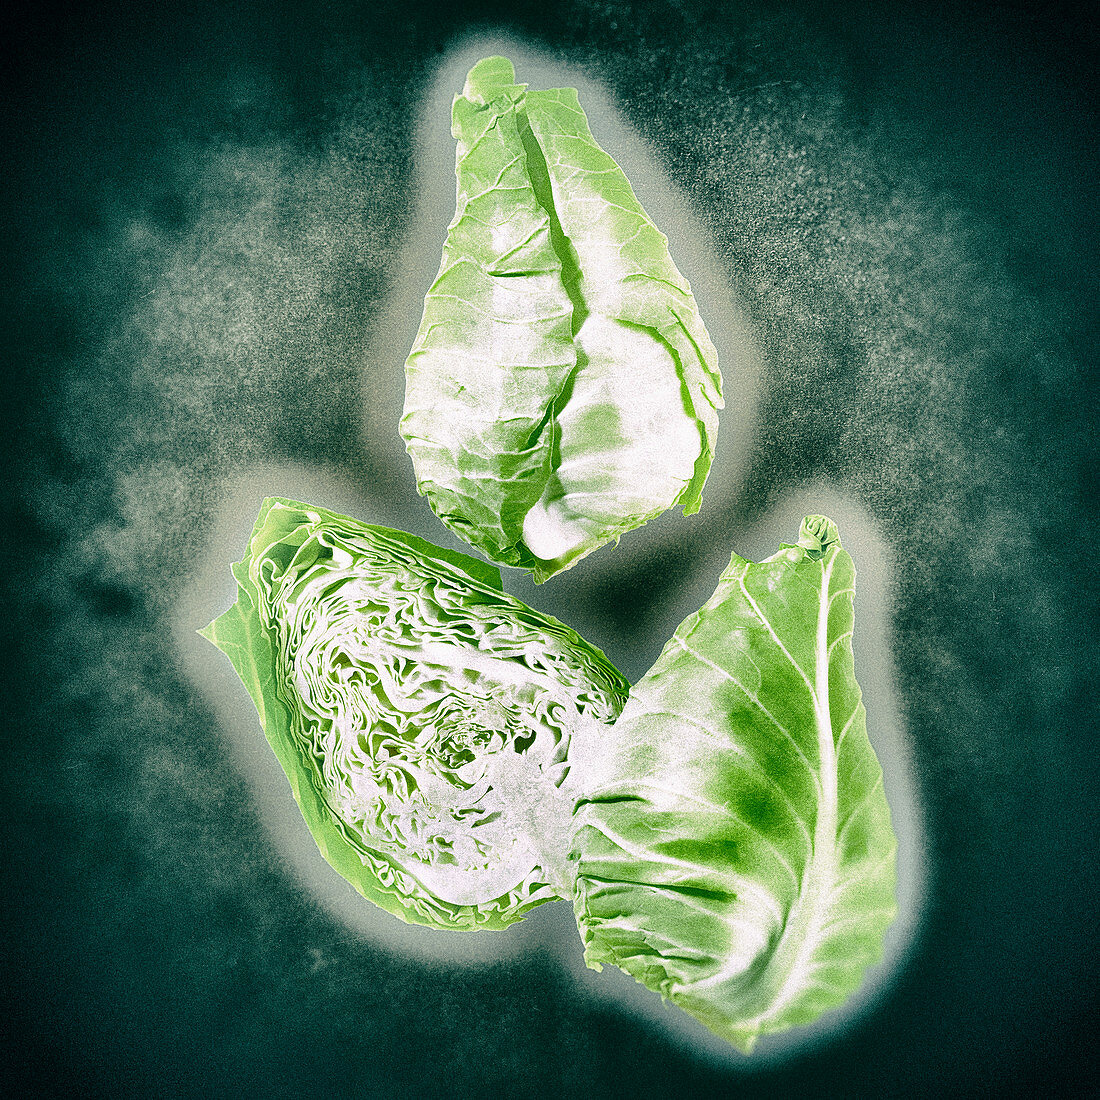 Pointed cabbage on a green background